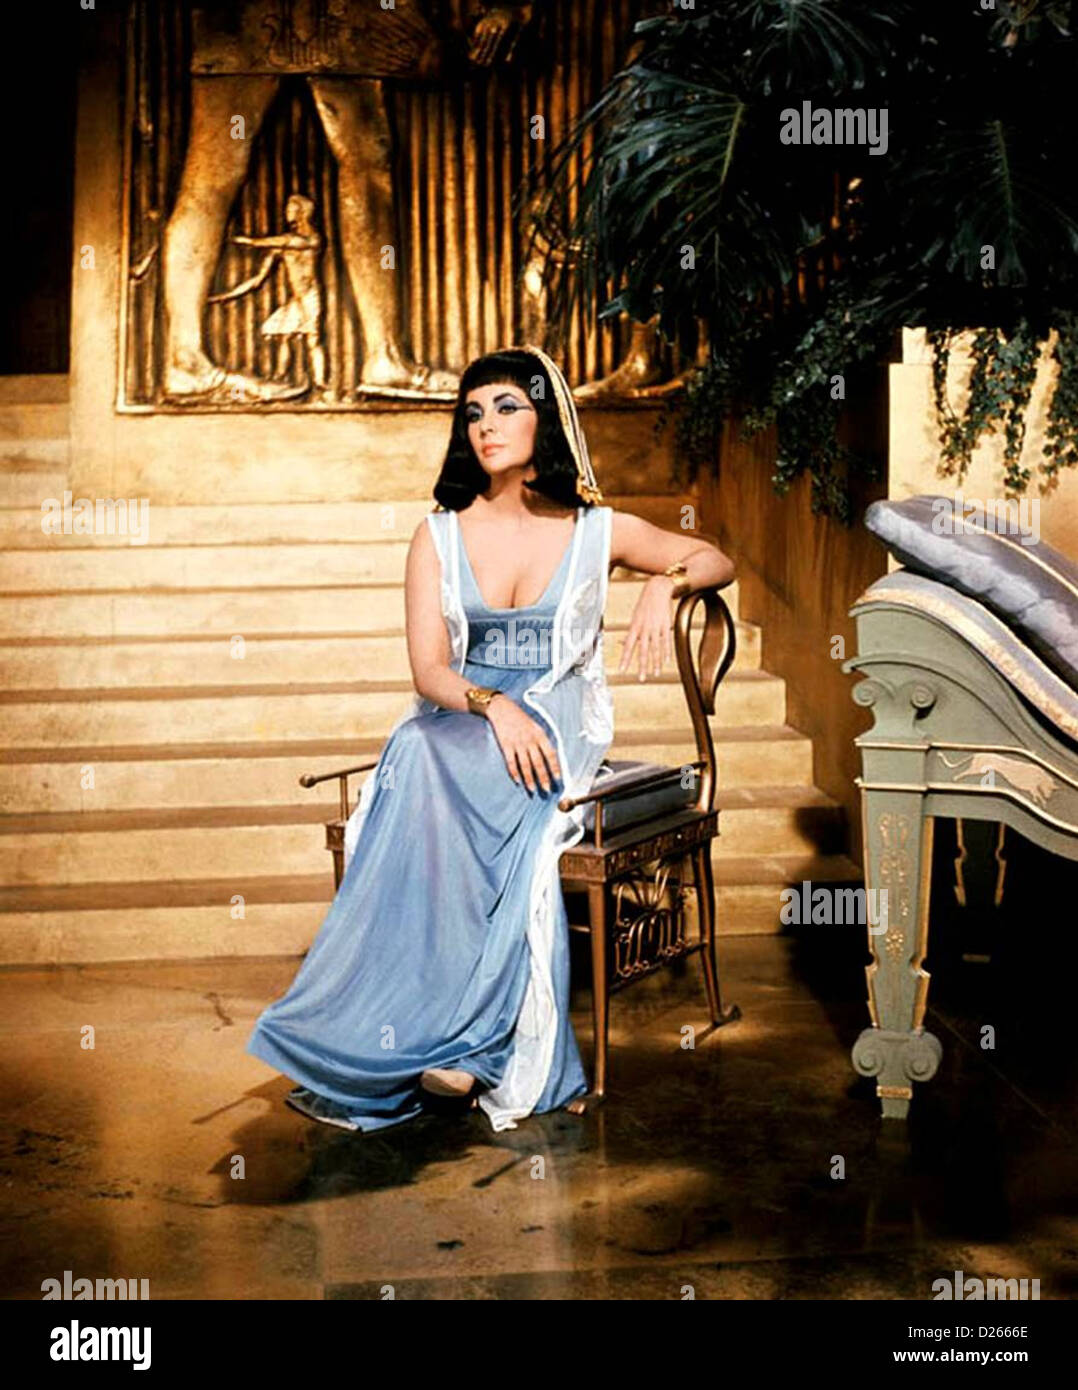 Cleopatra 1963 20th Century Fox Film With Elizabeth Taylor Stock Photo Alamy